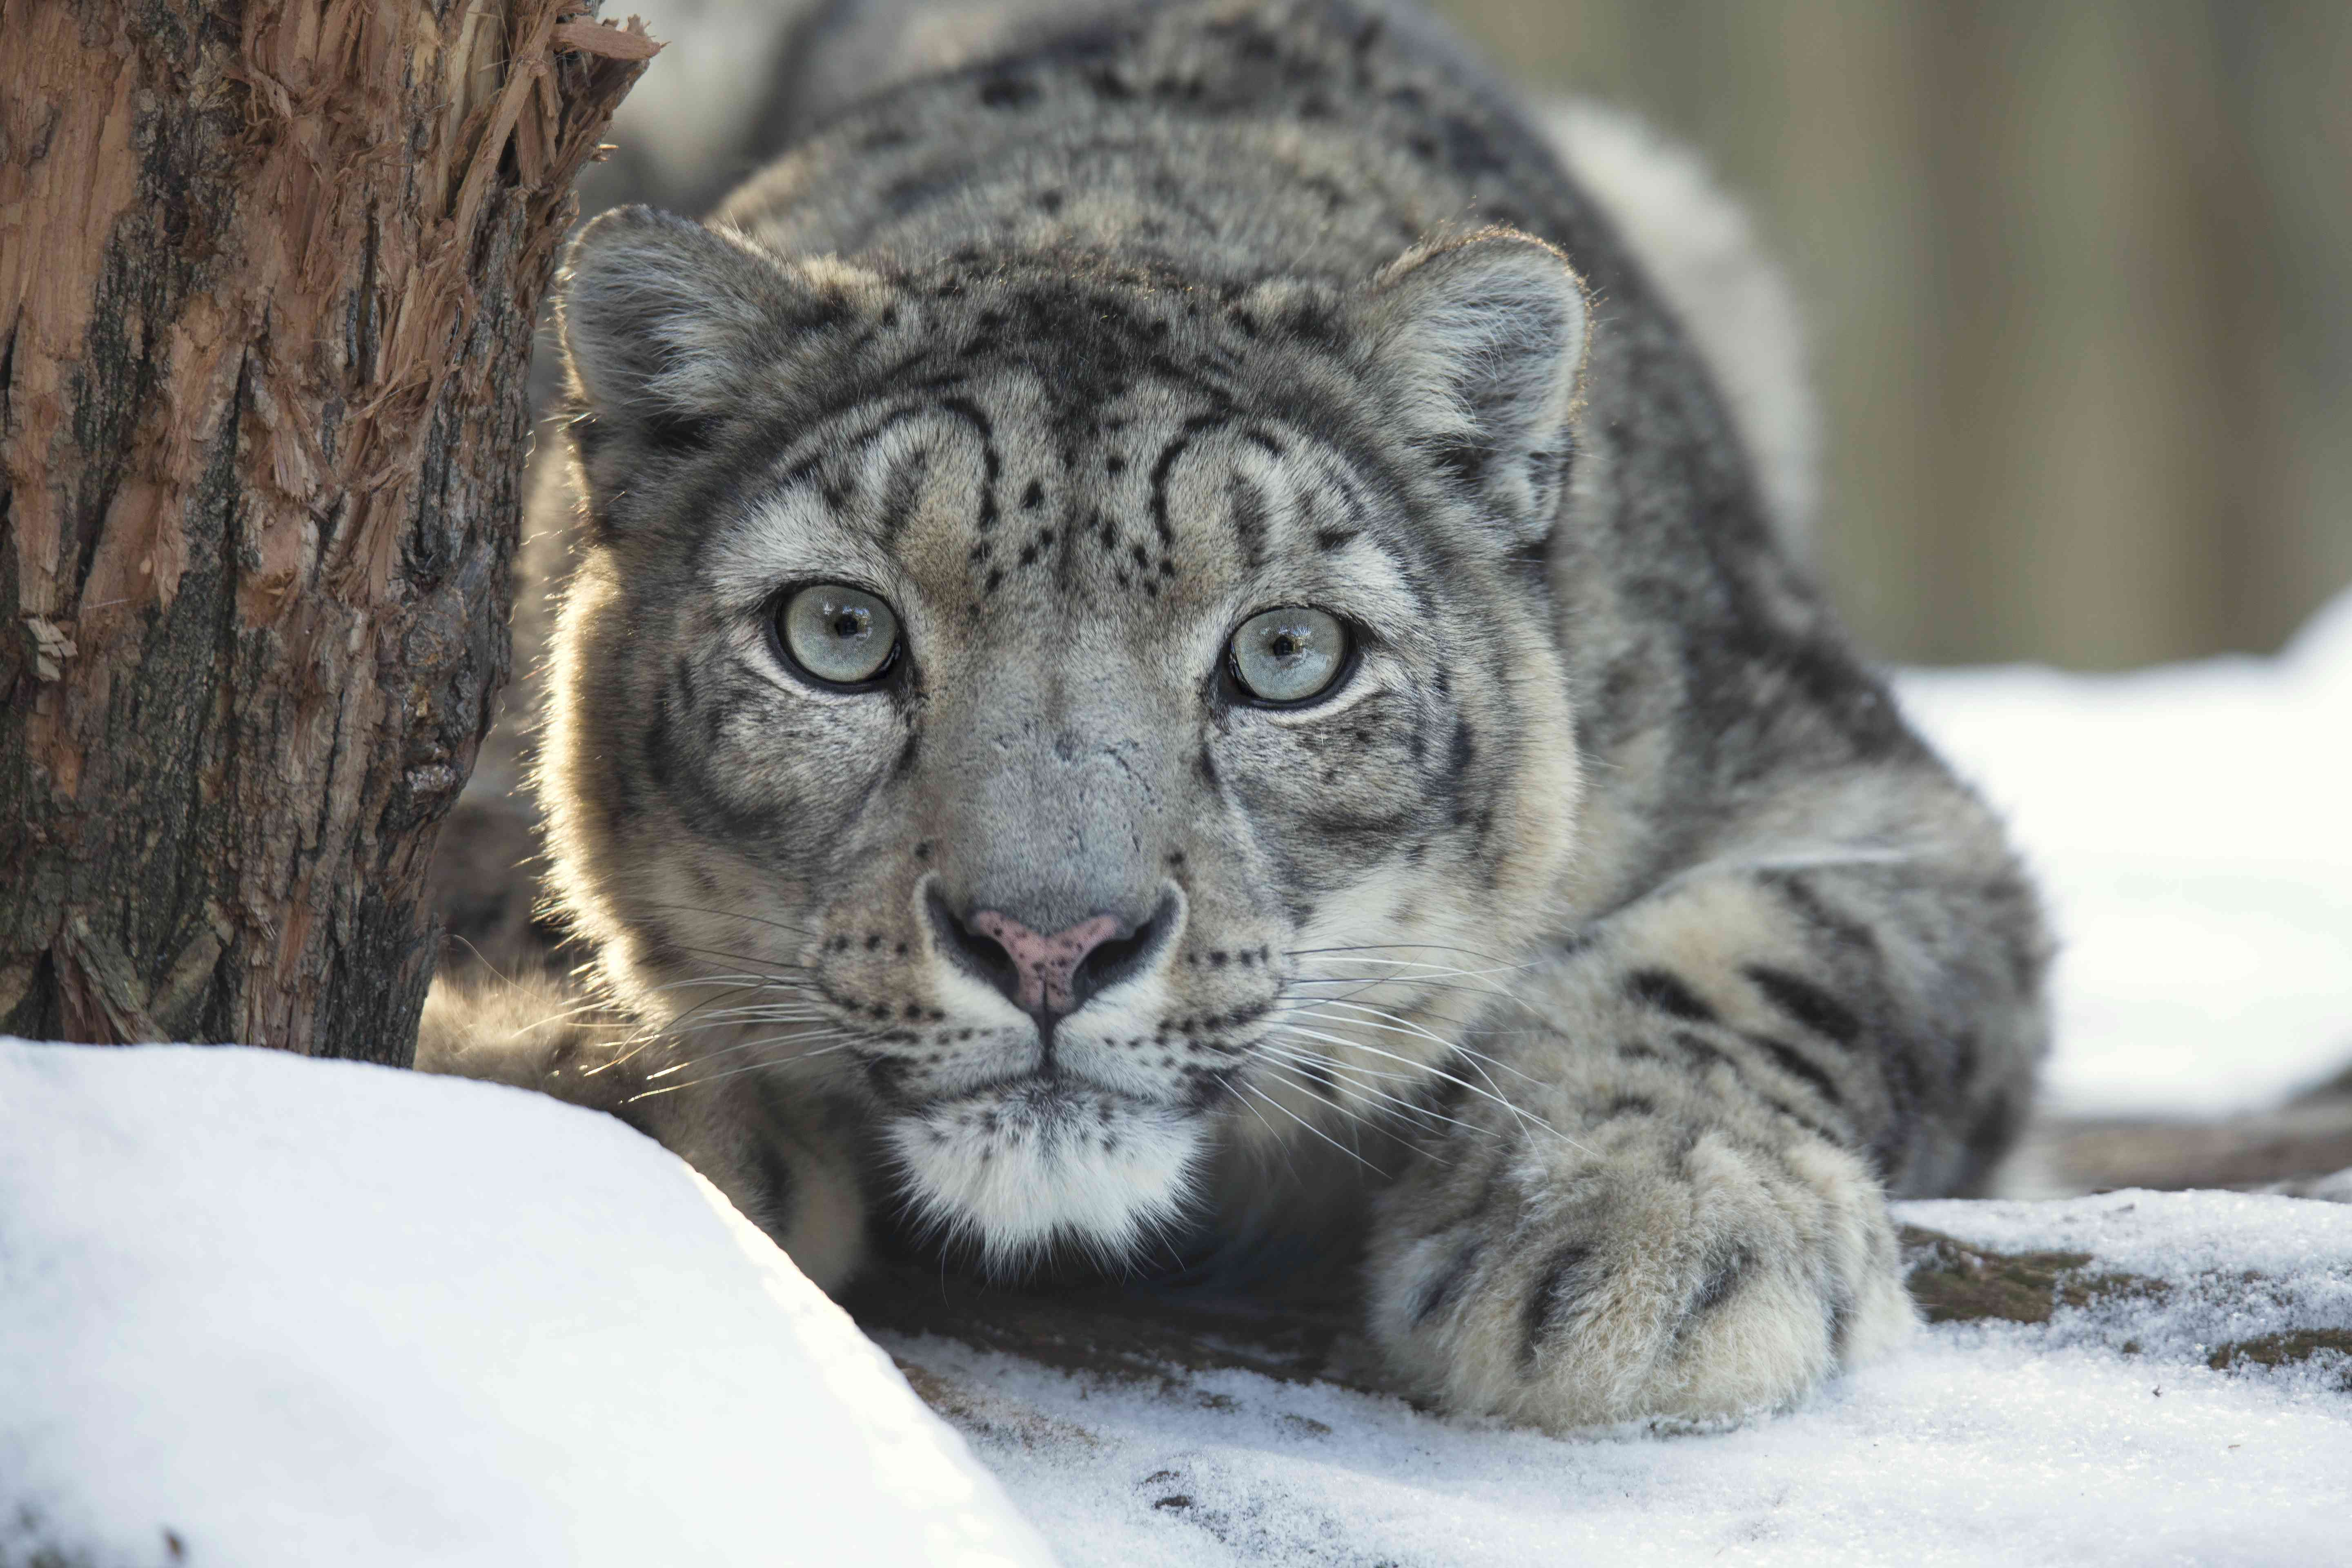 A snow leopard on the prowl, crouching low next to a tree in snow